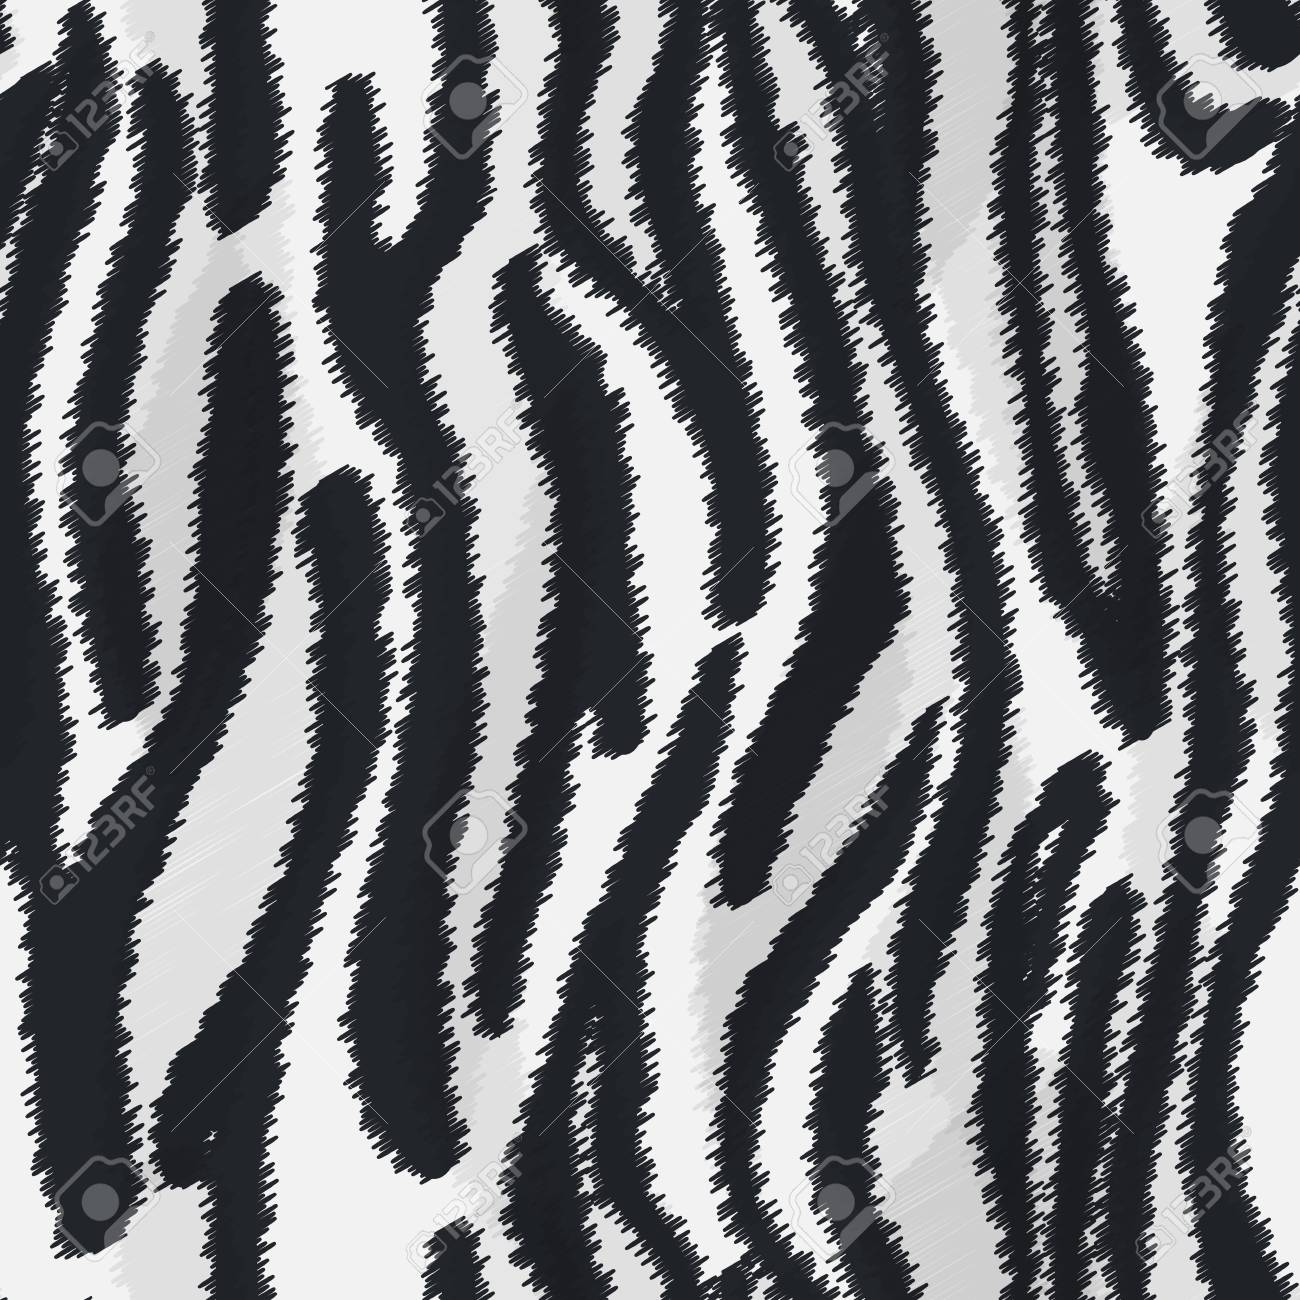 Texture Zebra Fur Texture Zebra Pattern Animal Safari Skin Texture 123rfcom Seamless Leather Texture Zebra Fur Texture Zebra Pattern Animal